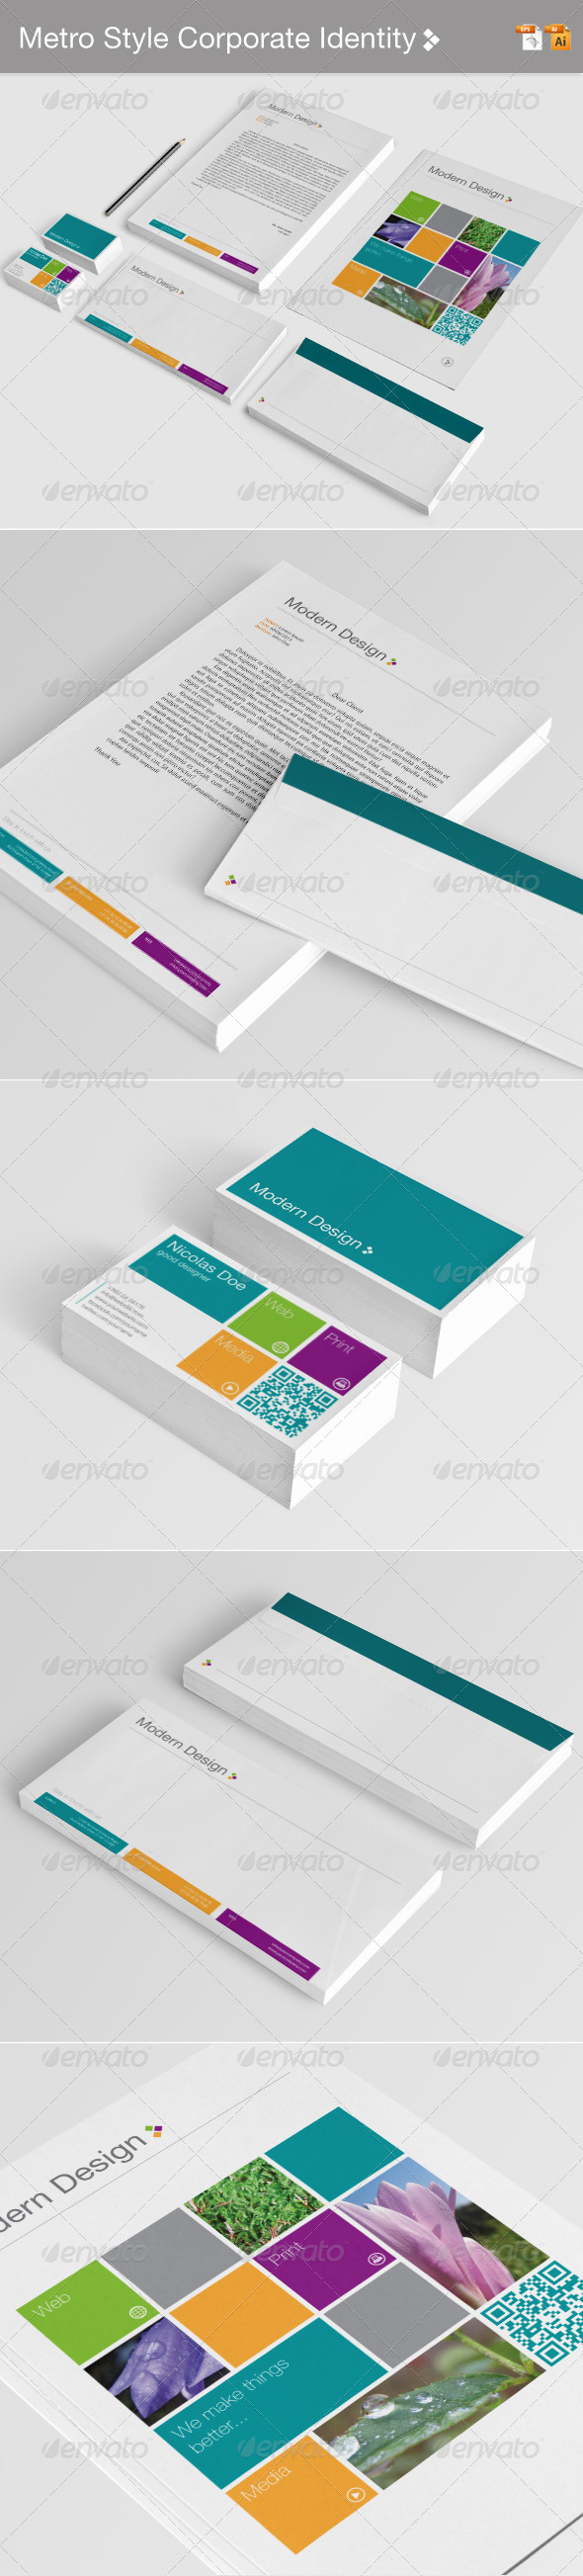 GraphicRiver Metro Style Corporate Identity 4158000